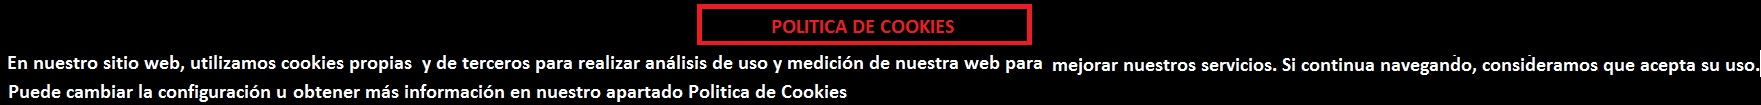 POLITICA DE COOKIES